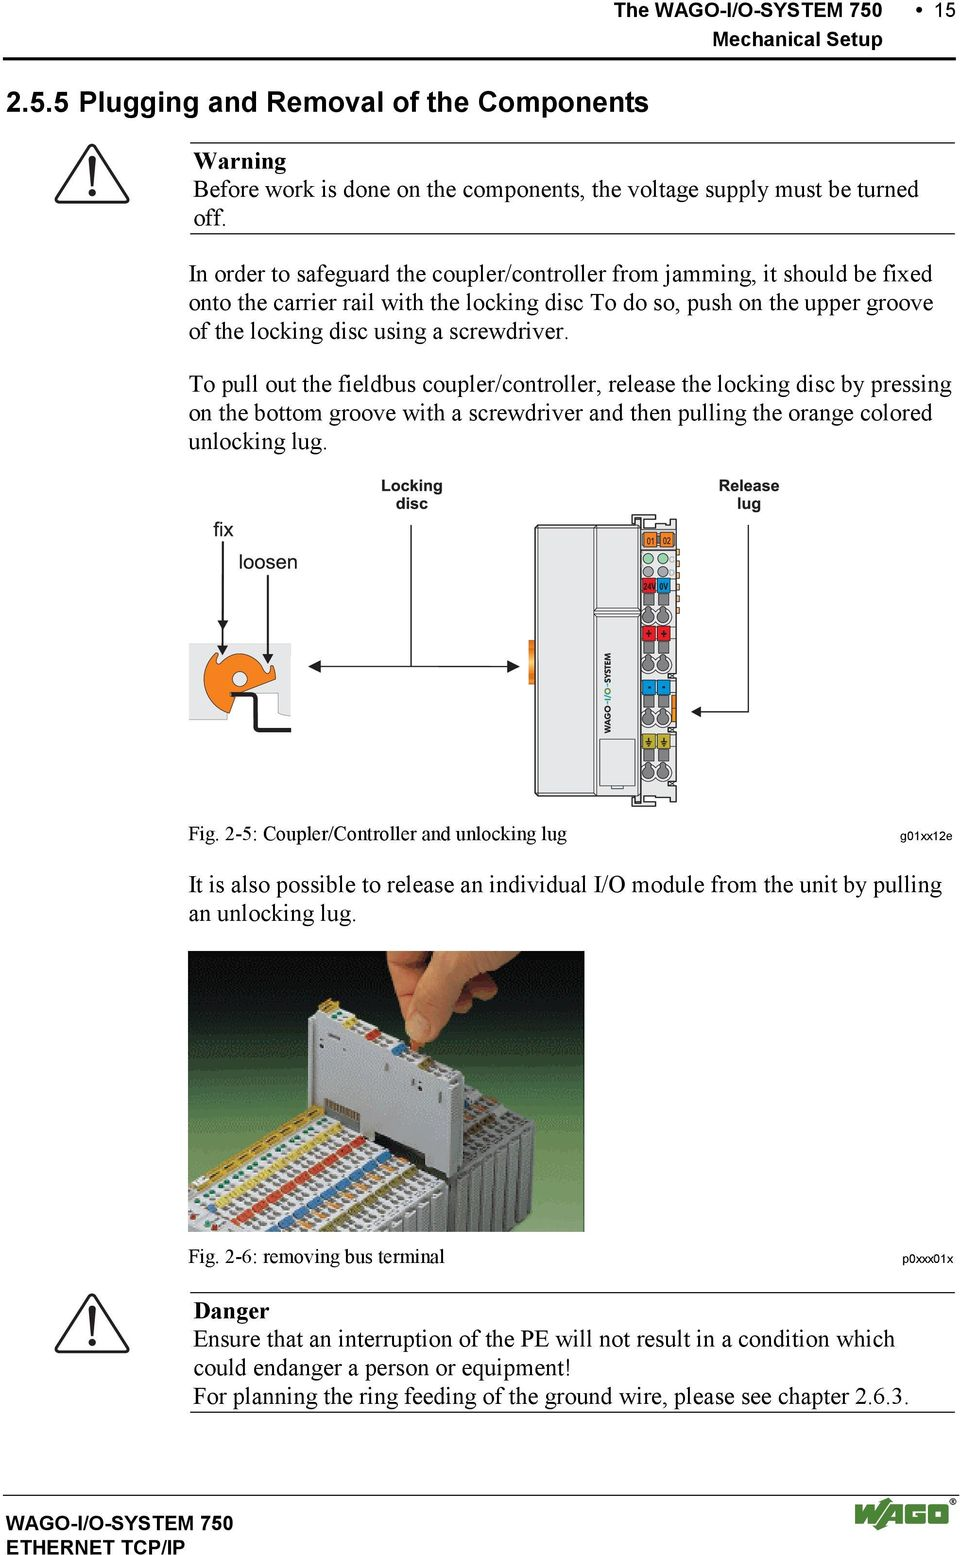 To pull out the fieldbus coupler/controller, release the locking disc by pressing on the bottom groove with a screwdriver and then pulling the orange colored unlocking lug. Fig.